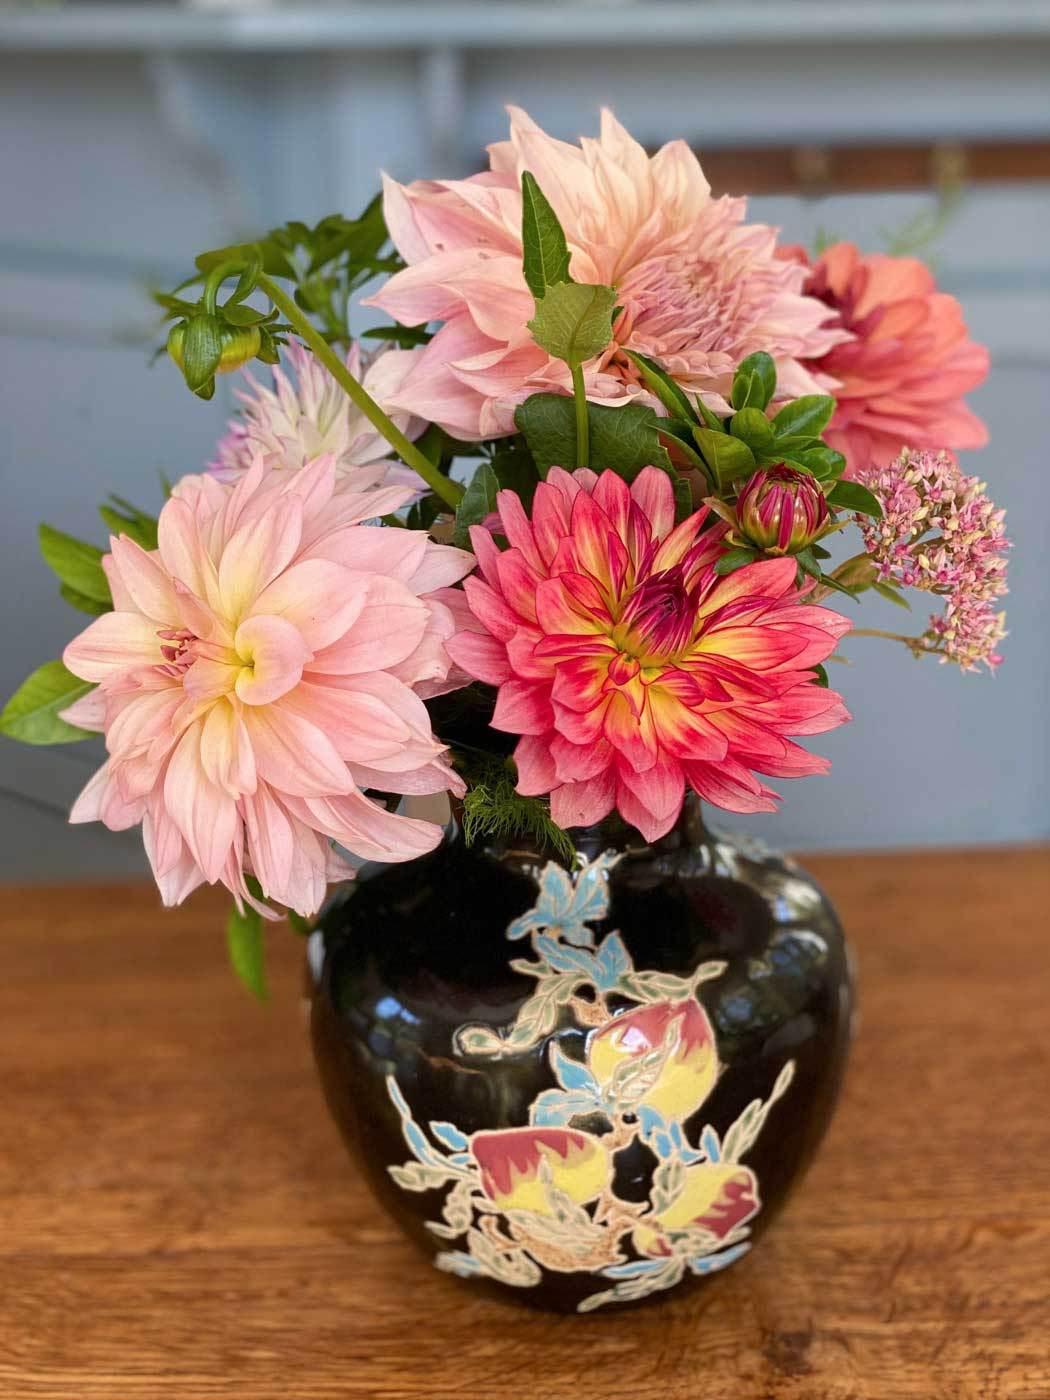 tuto-creer-bouquet-dahlias-art-floral-vase-2